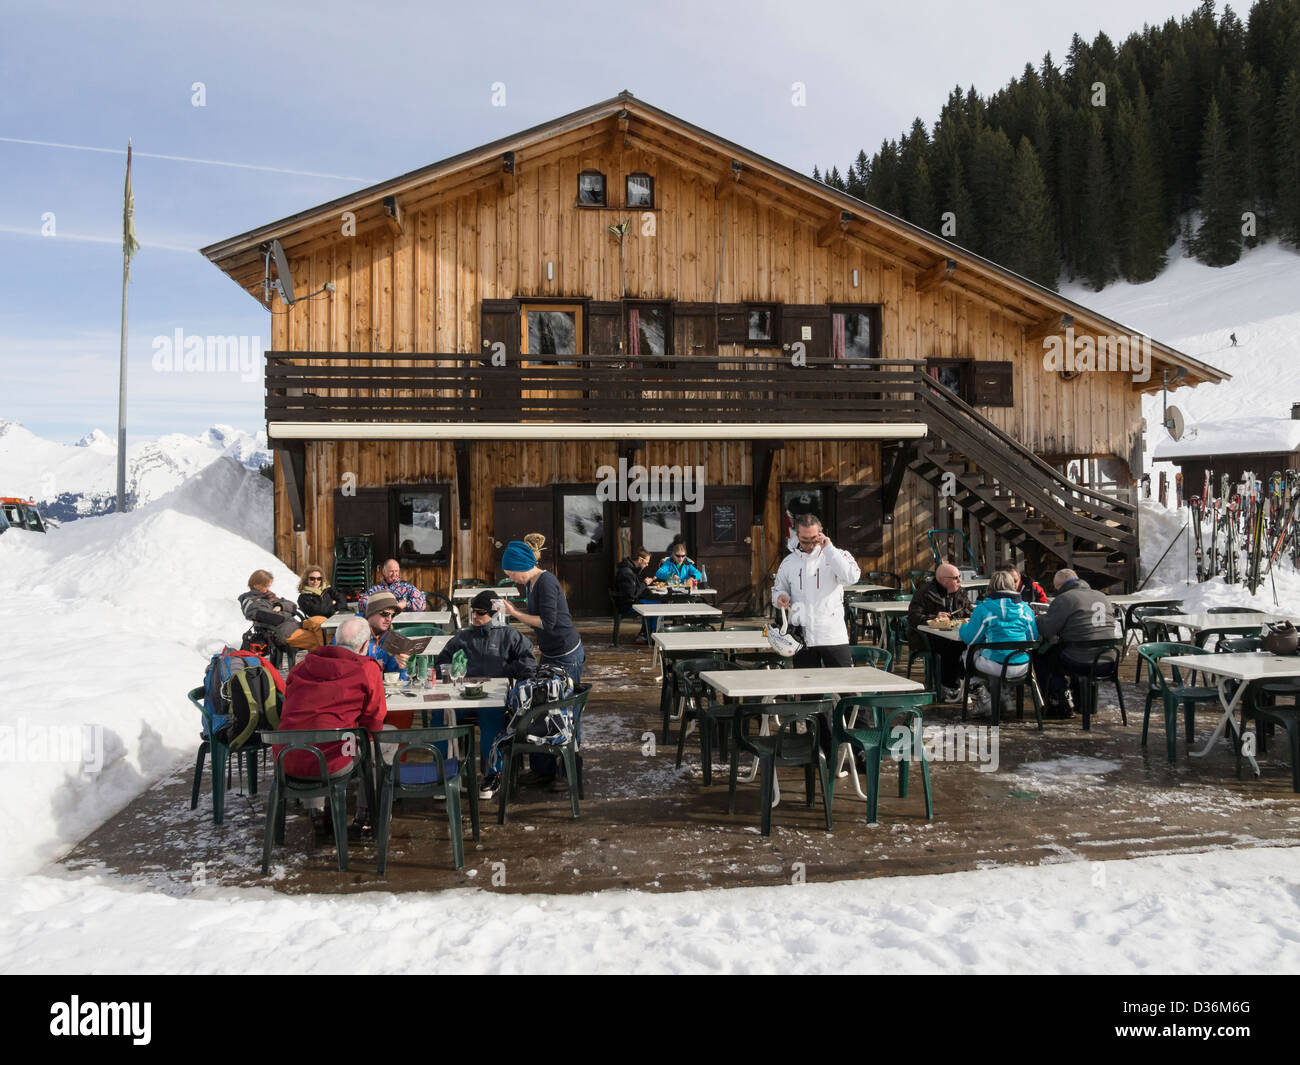 People dining outside Gite du Lac de Gers alpine lakeside ski restaurant in Le Grand Massif in French Alps. Sixt - Stock Image